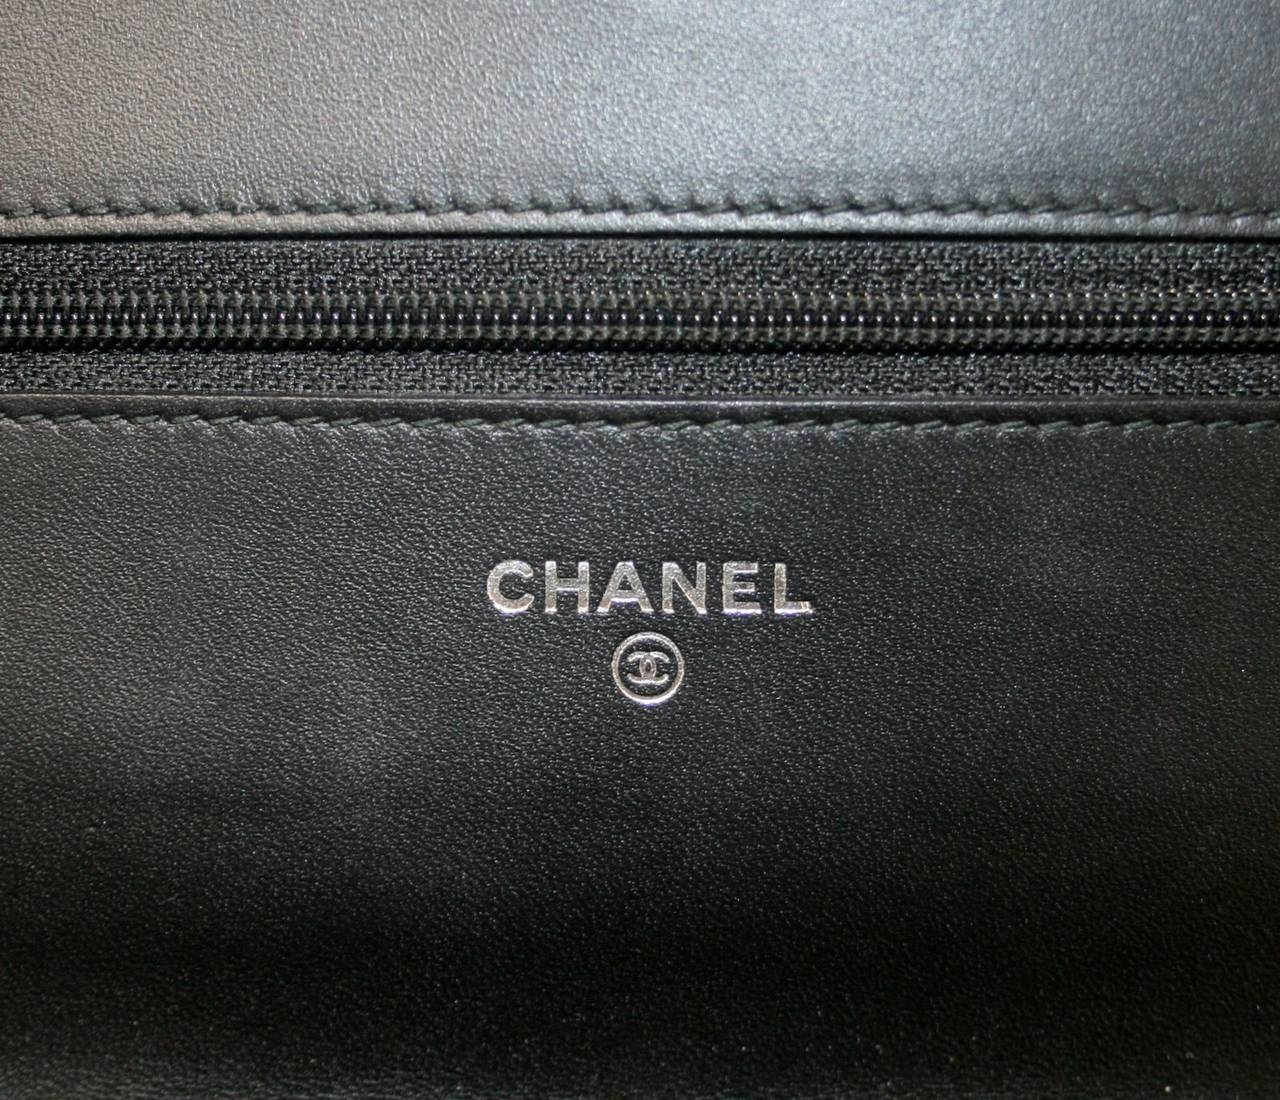 Chanel Black Velvet WOC Boy Bag Wallet on a Chain Ltd. Ed. 8